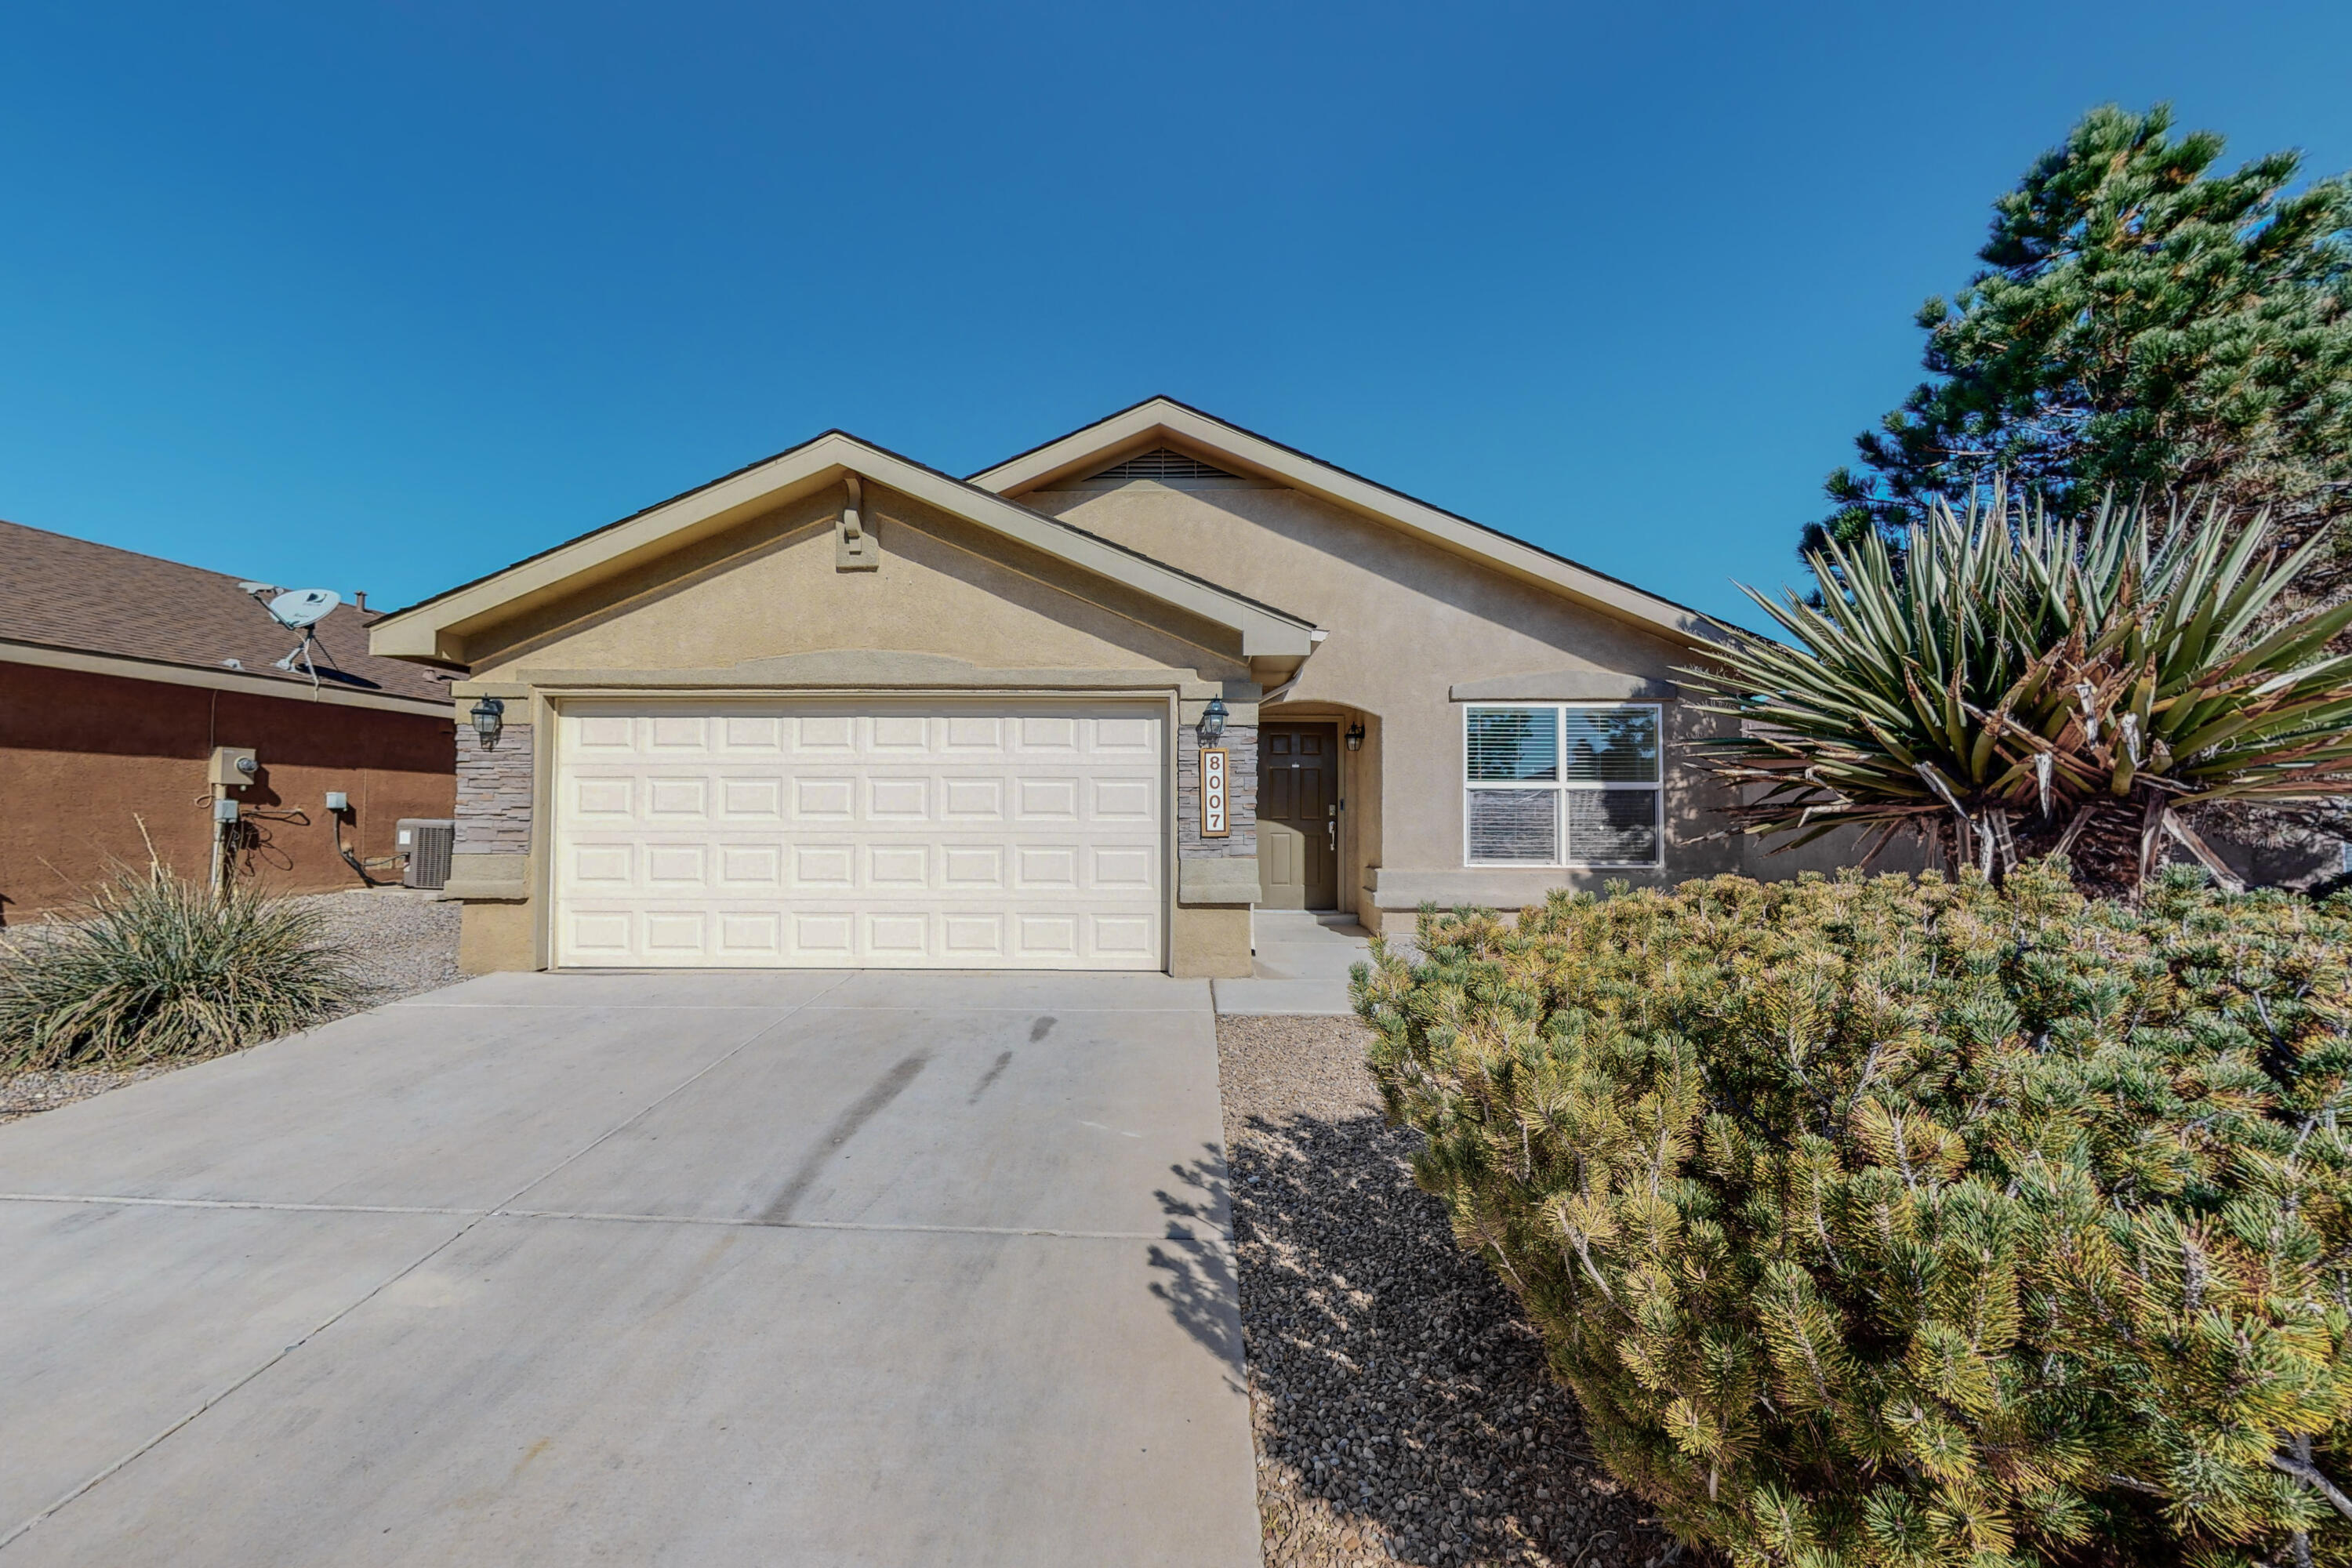 Freshly updated Pulte home in the sought after community of Ventana Ranch. Luxury vinyl flooring throughout(no carpet) Ceiling fans and recessed lighting have all been replaced. Newer Refrigerated Air and Furnace(approx 2 years young). Functional kitchen with ample cabinets and countertops. Stainless appliances all convey. Open floor plan. Spacious Primary bedroom, dual vanities, walk in closet. 2 more good sized bedrooms. SW landscape, front and back with drip system.Close to parks, amenities & schools (Volcano Vista school district). Dont miss this GEM.